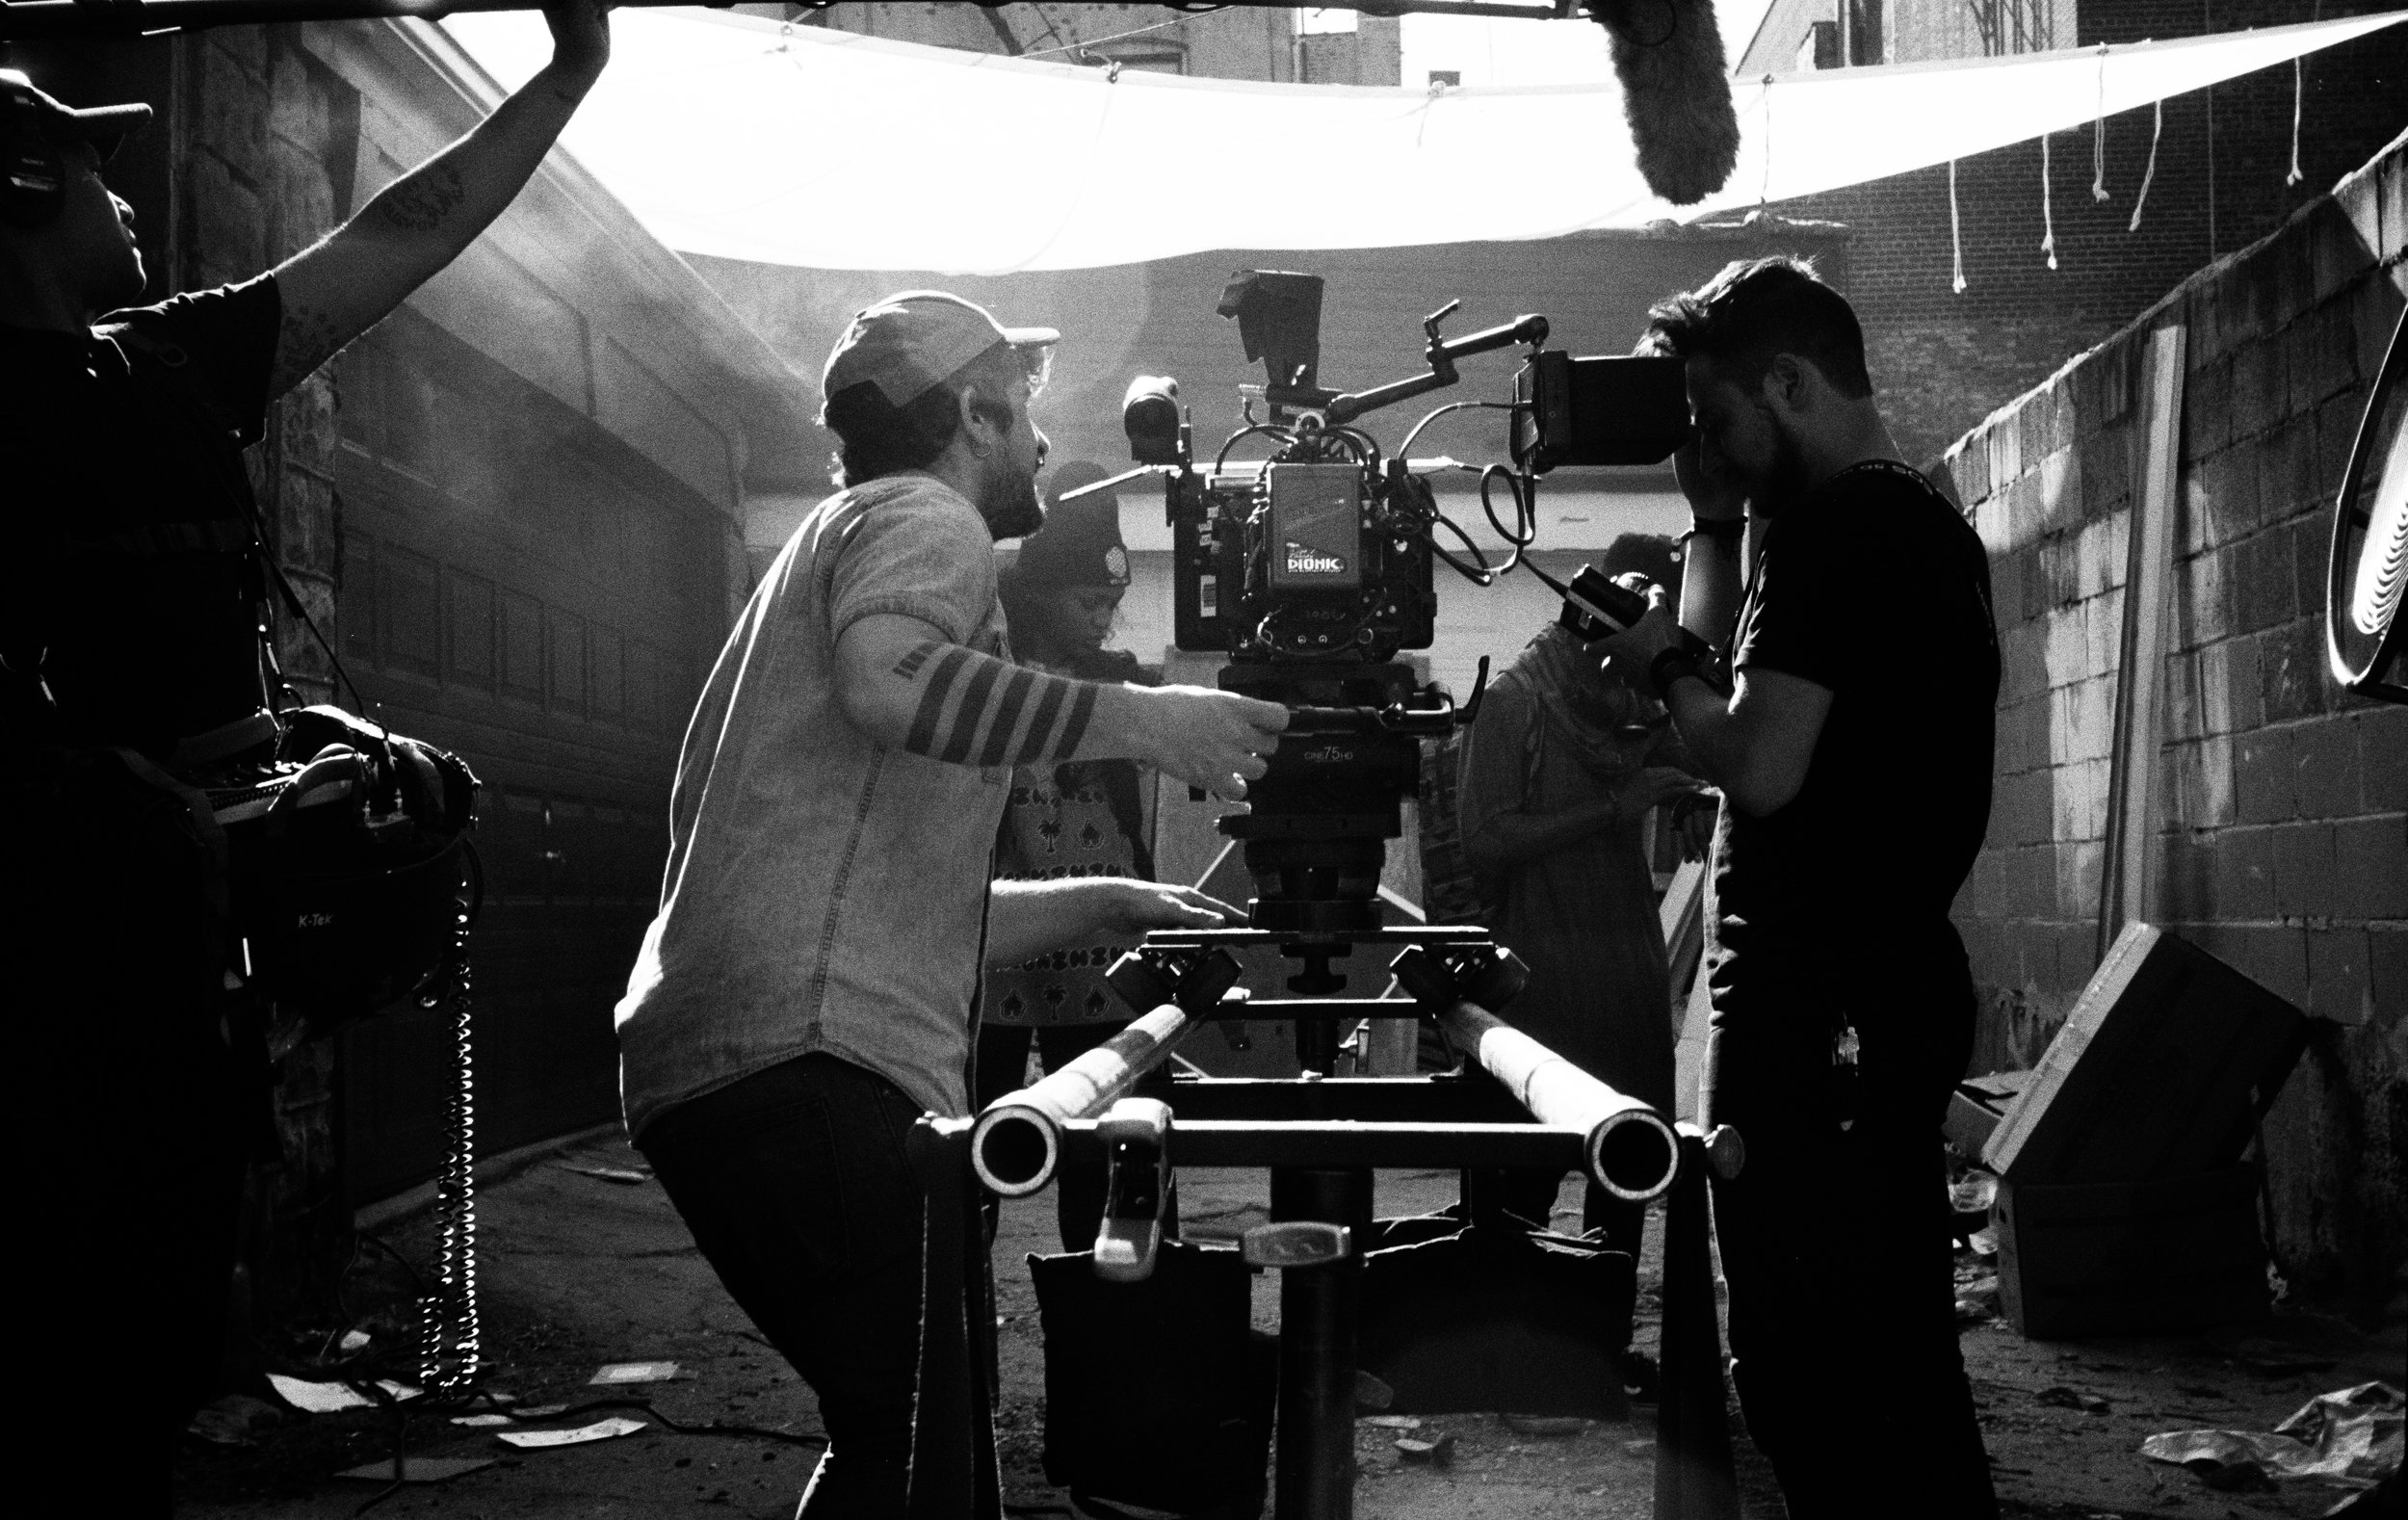 """From L to R Sound Mixer Aaron Zick, DP Felipe Vara de Rey, 1st AC Karim Kassem, with lead actors Dante Crichlow and Eden Duncan Smith on the set of """"See You Yesterday""""  Kodak Tri-X (35mm)"""